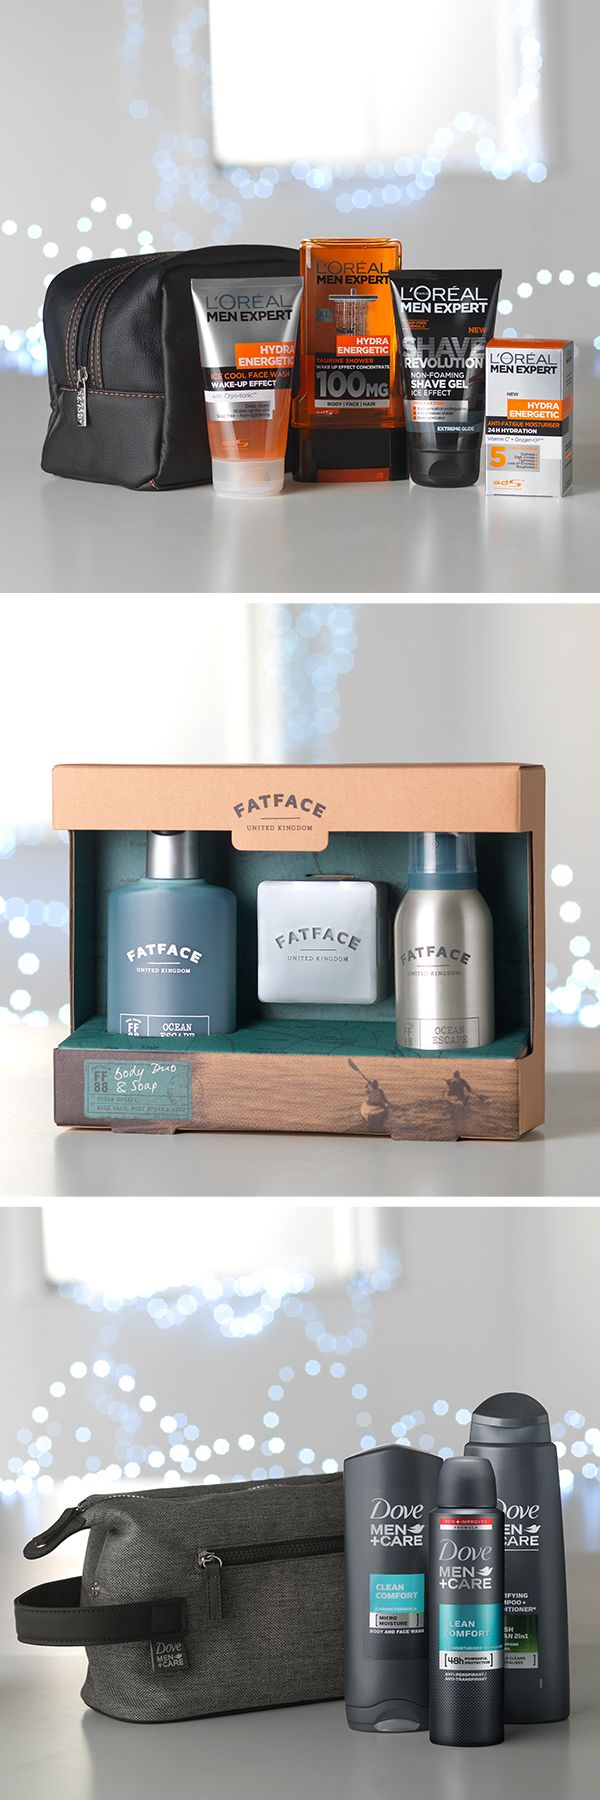 Forever checking himself out in the mirror, he certainly likes to take care of himself – and after years of telling him to get out of the bathroom, you know that all too well. This year give him a few great grooming treats, like the L'Oreal The Expert Washbag, Fat Face Body Duo & Soap and Dove Men + Care Washbag.